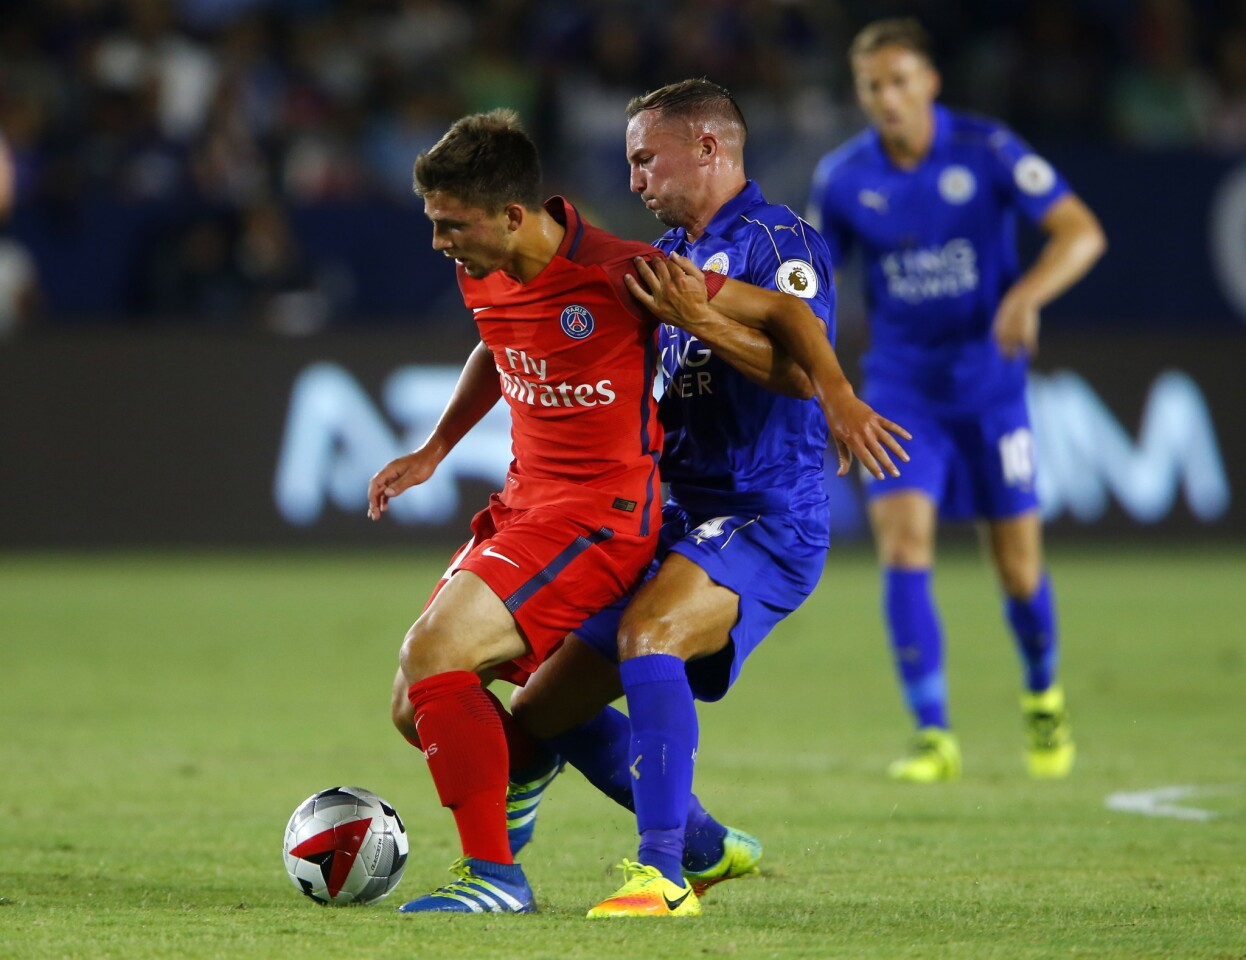 Football - Paris St Germain v Leicester City - International Champions Cup - StubHub Center, Carson, California - 30/7/16 Paris St Germain's Lorenzo Callegari (L) in action with Leicester City's Danny Drinkwater Reuters / Mike Blake Livepic ** Usable by SD ONLY **